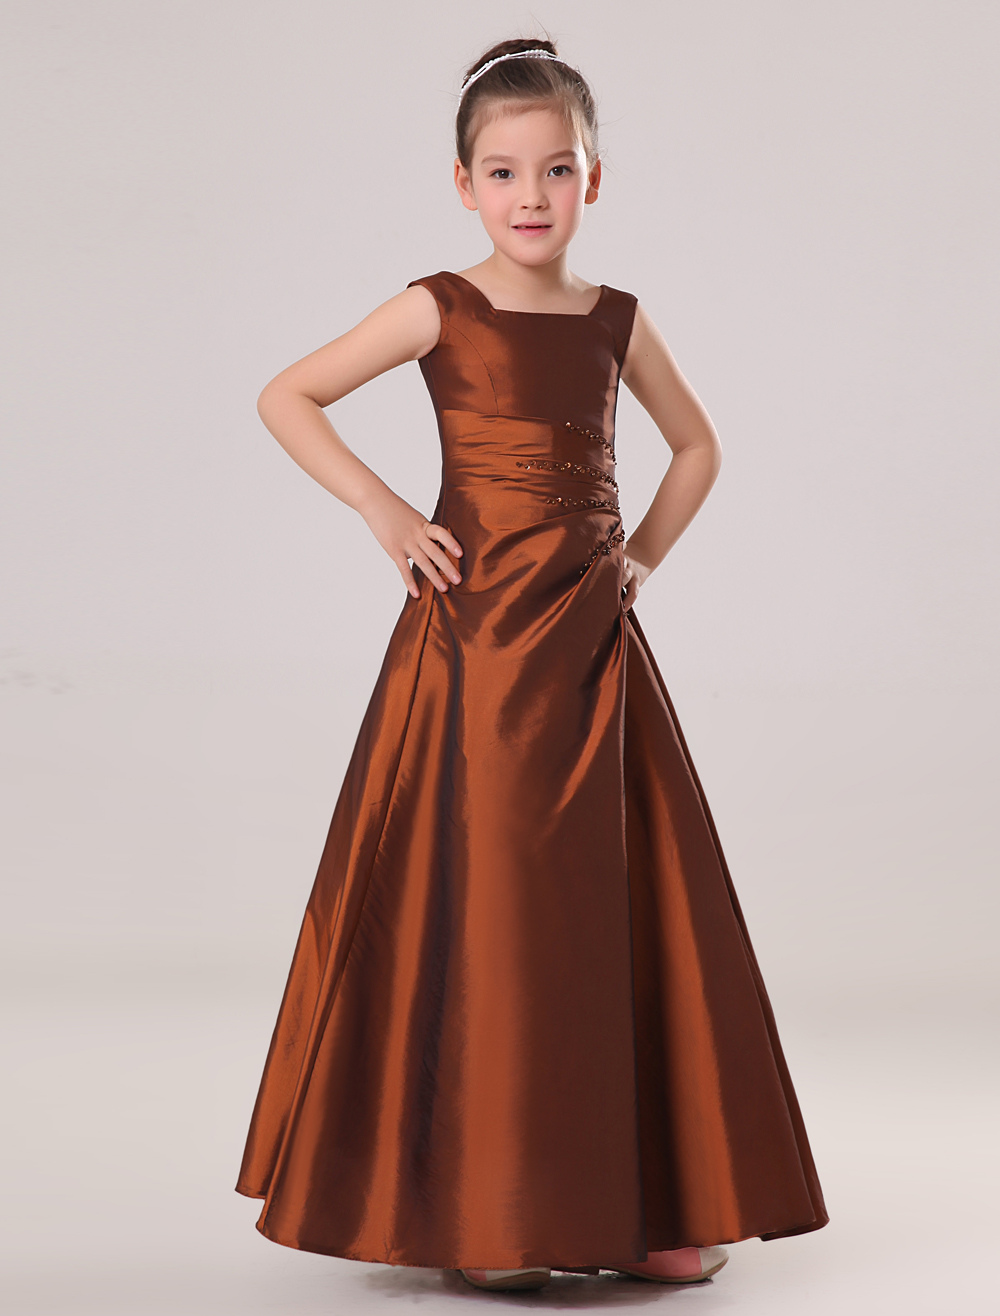 Exquisite Chocolate Brown Taffeta Square Collar Floor Length Junior Bridesmaid Dress